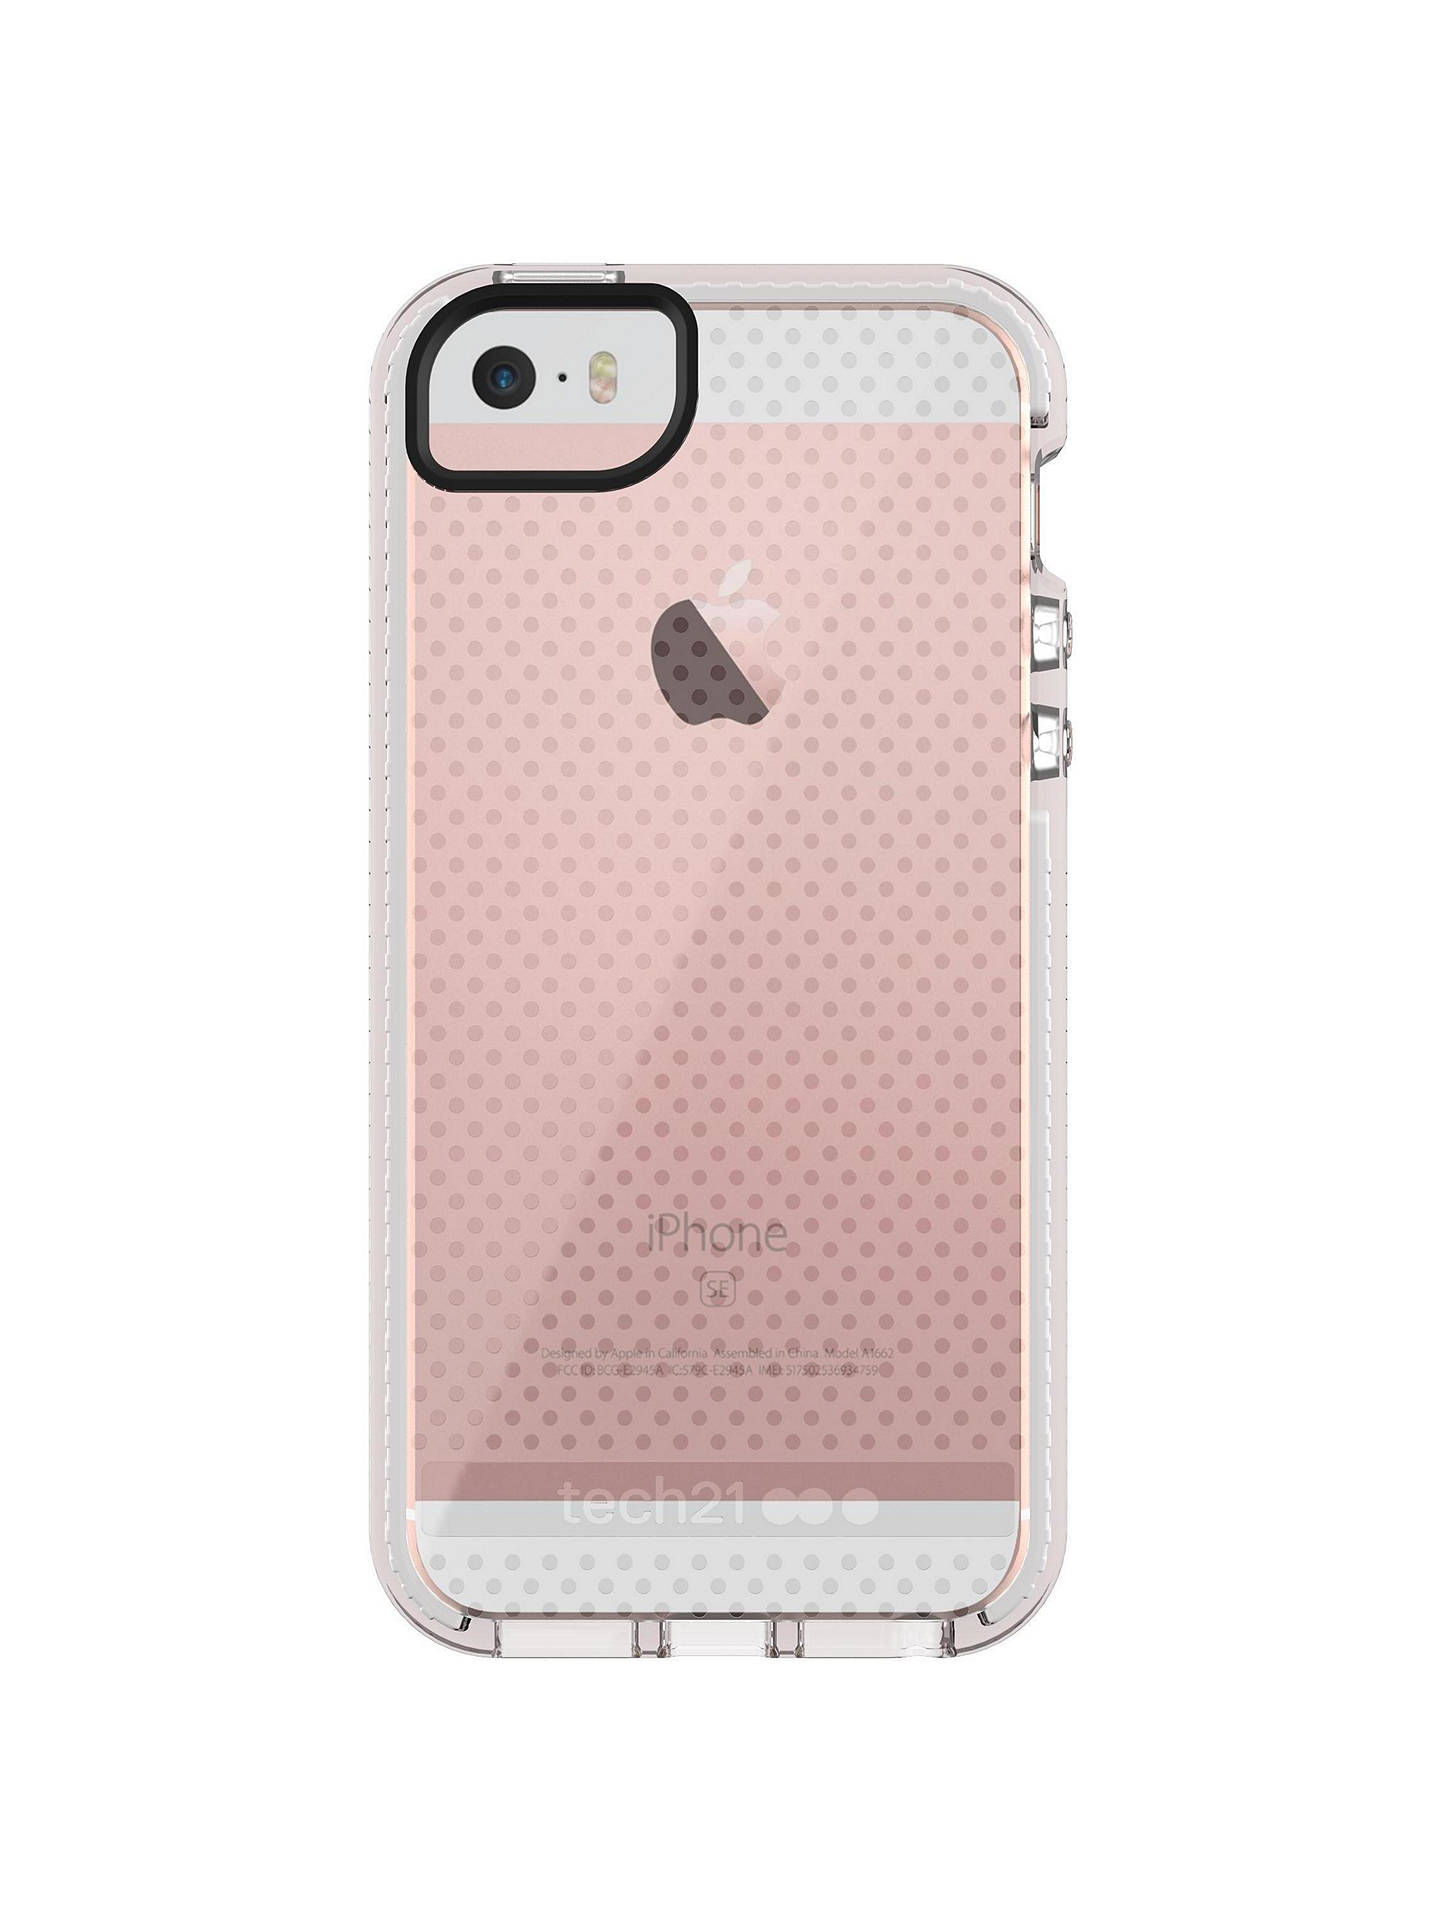 tech21 Evo Mesh Case for Apple iPhone 5/5s/SE, Clear White ...